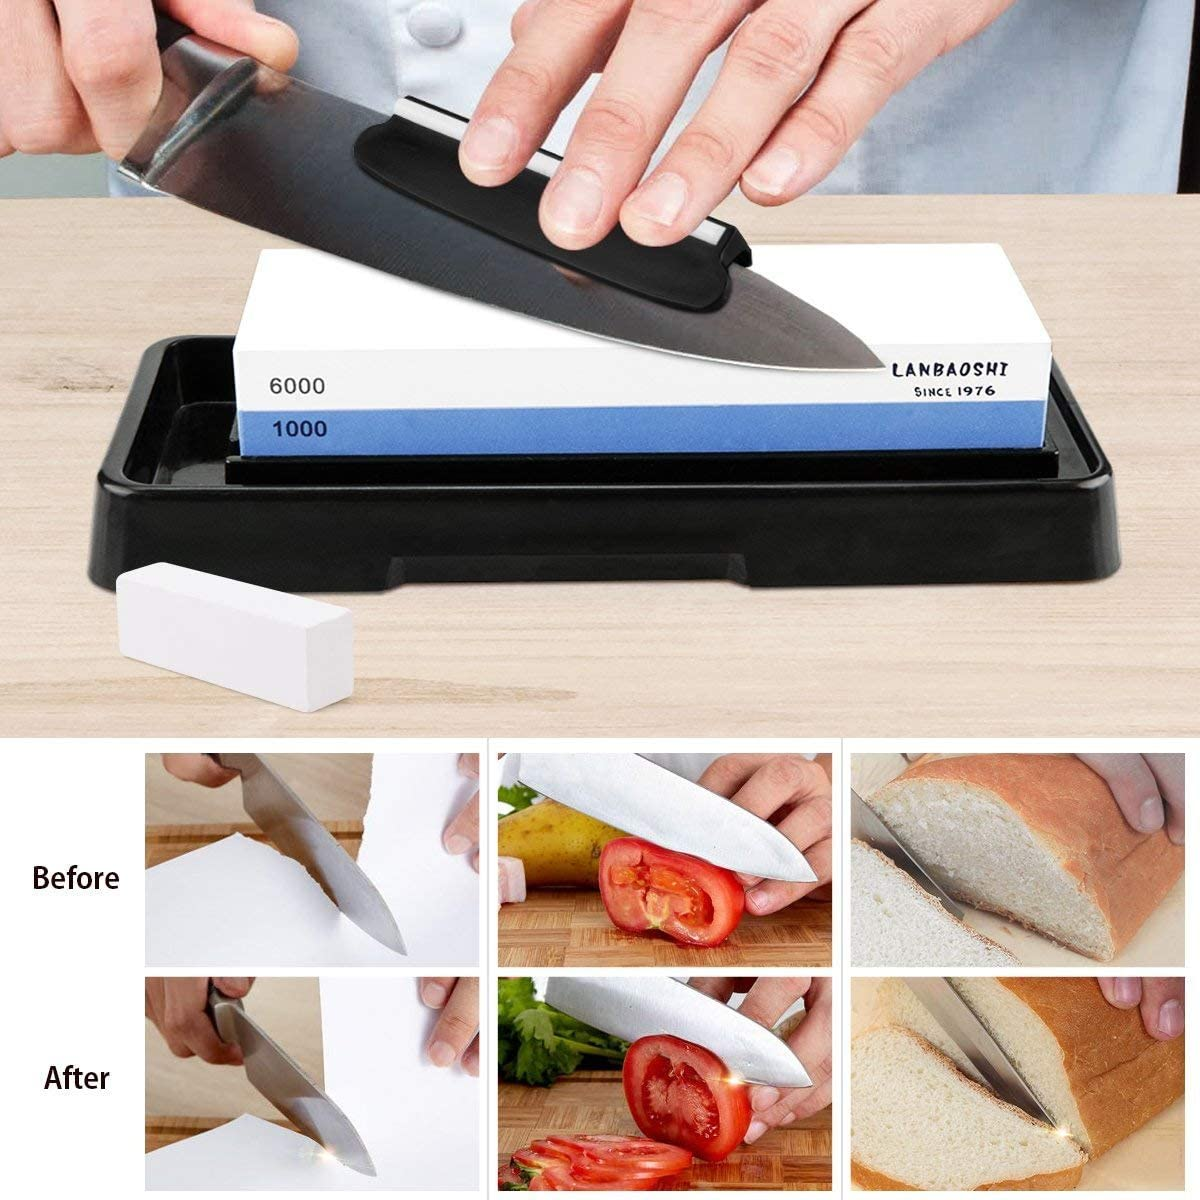 Knife Sharpening Stone, Whetstone Dual Sided 1000/6000 Grit Waterstone with Angle Guide Non Slip Rub